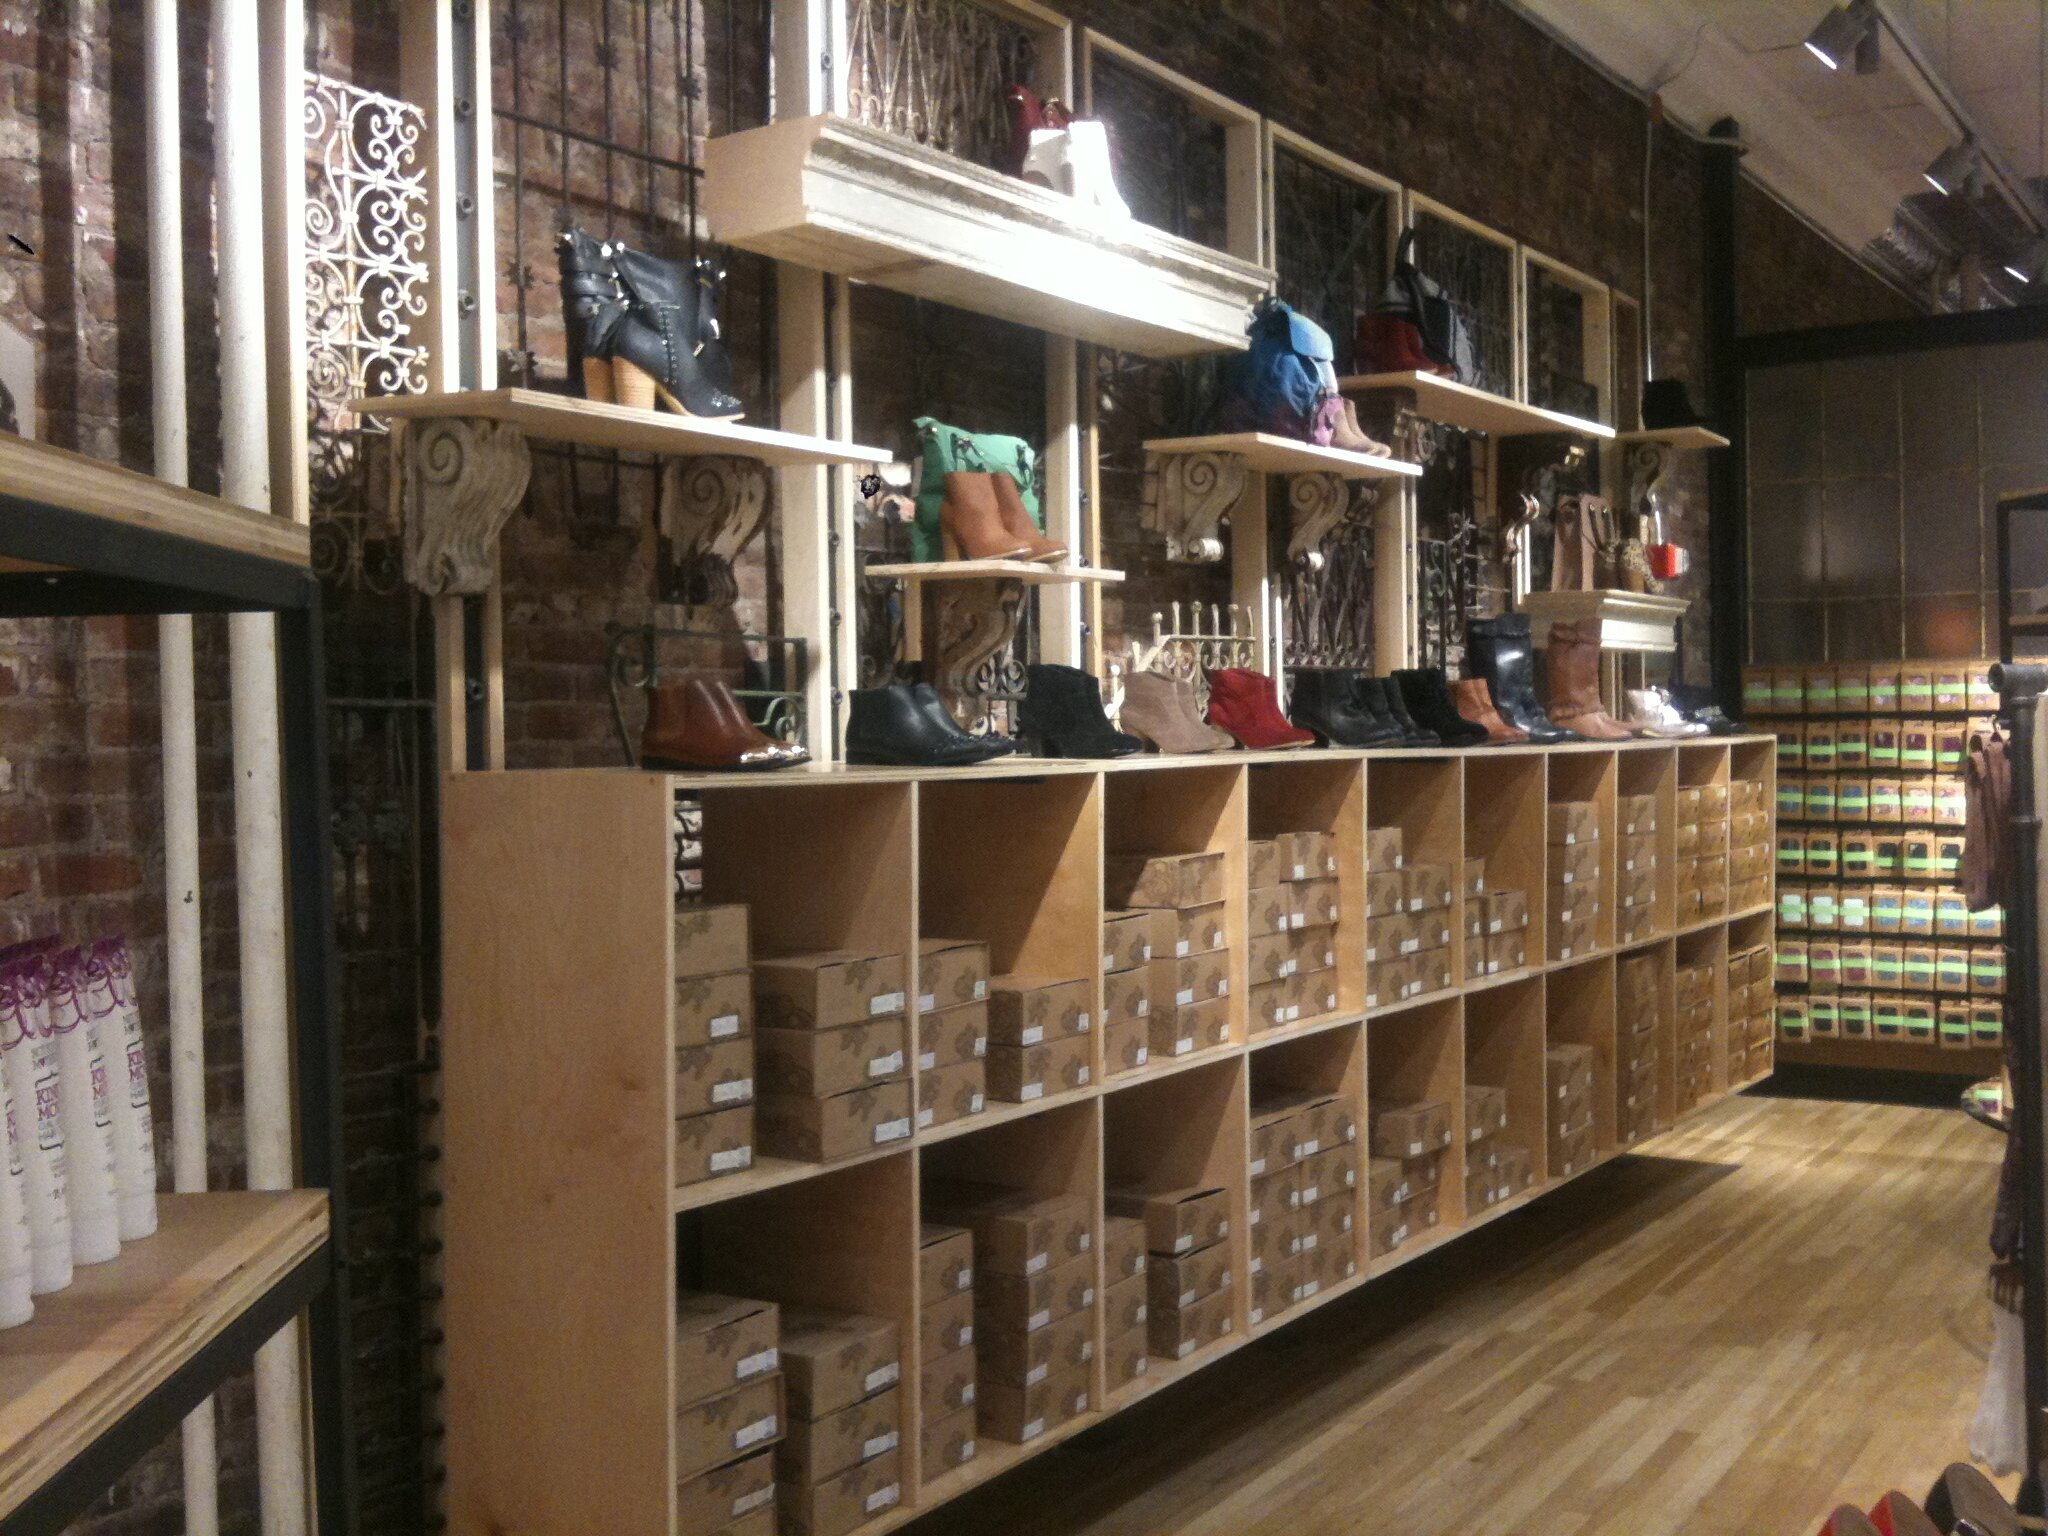 Floating shoe cabinet and floating shelves. Urban Outfitters - NYC, -wood, antique architectural elements